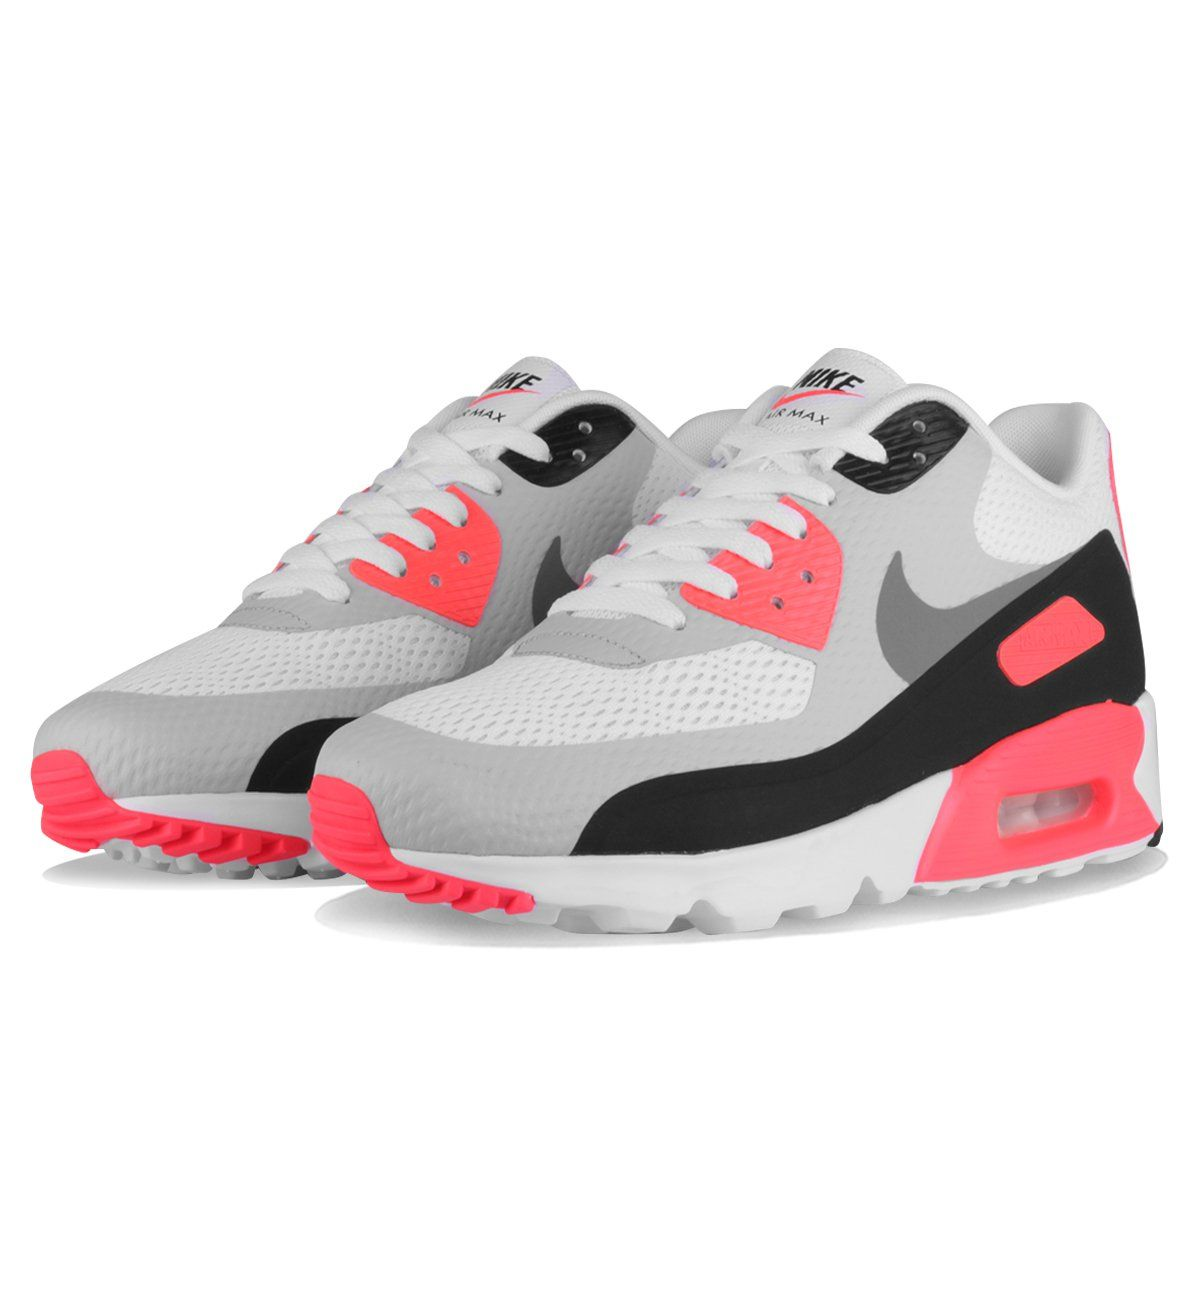 Nike Air Max 90 Ultra Essential White Cool Grey Infrared